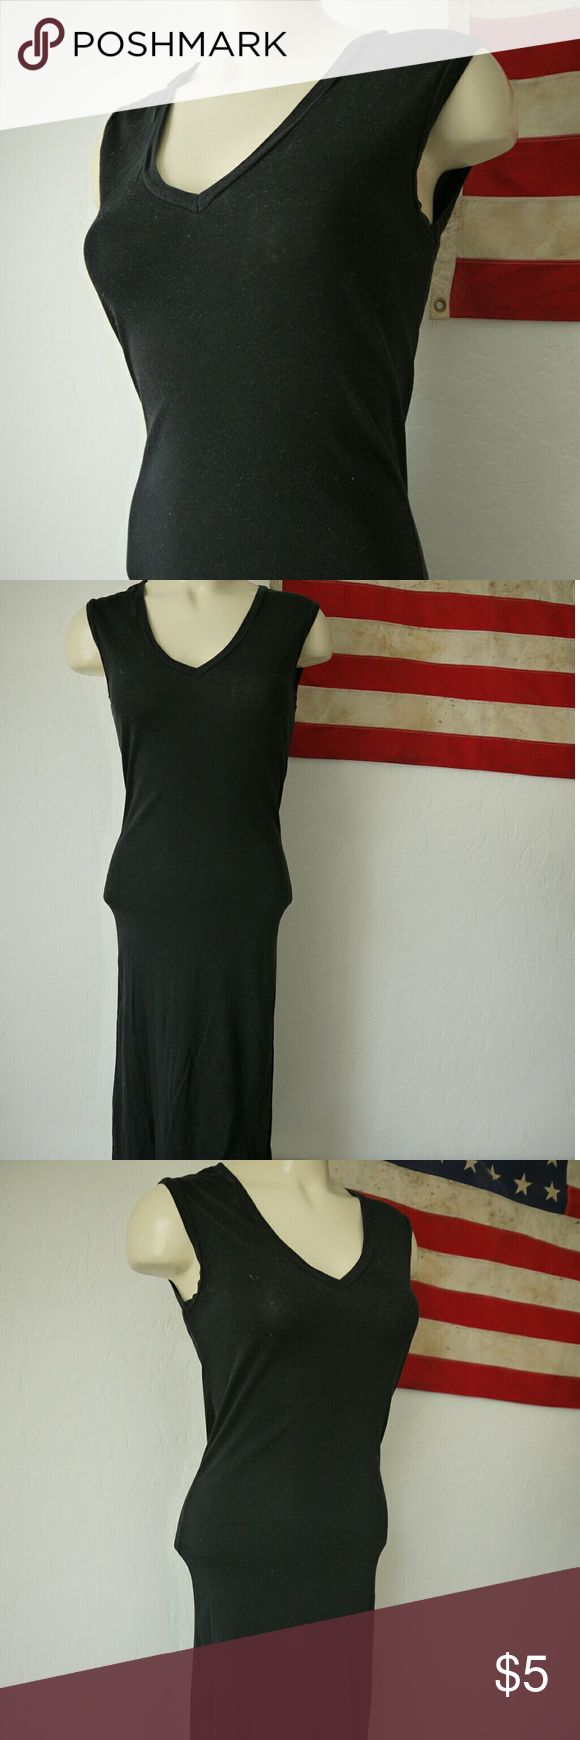 American Apparel vneck black maxi / basic maxi Simple cotton American Apparel black dress Hits around shins Size M Vneck In good condition. Has a small bleach mark on back. Really small. Price reflects American Apparel Dresses Midi